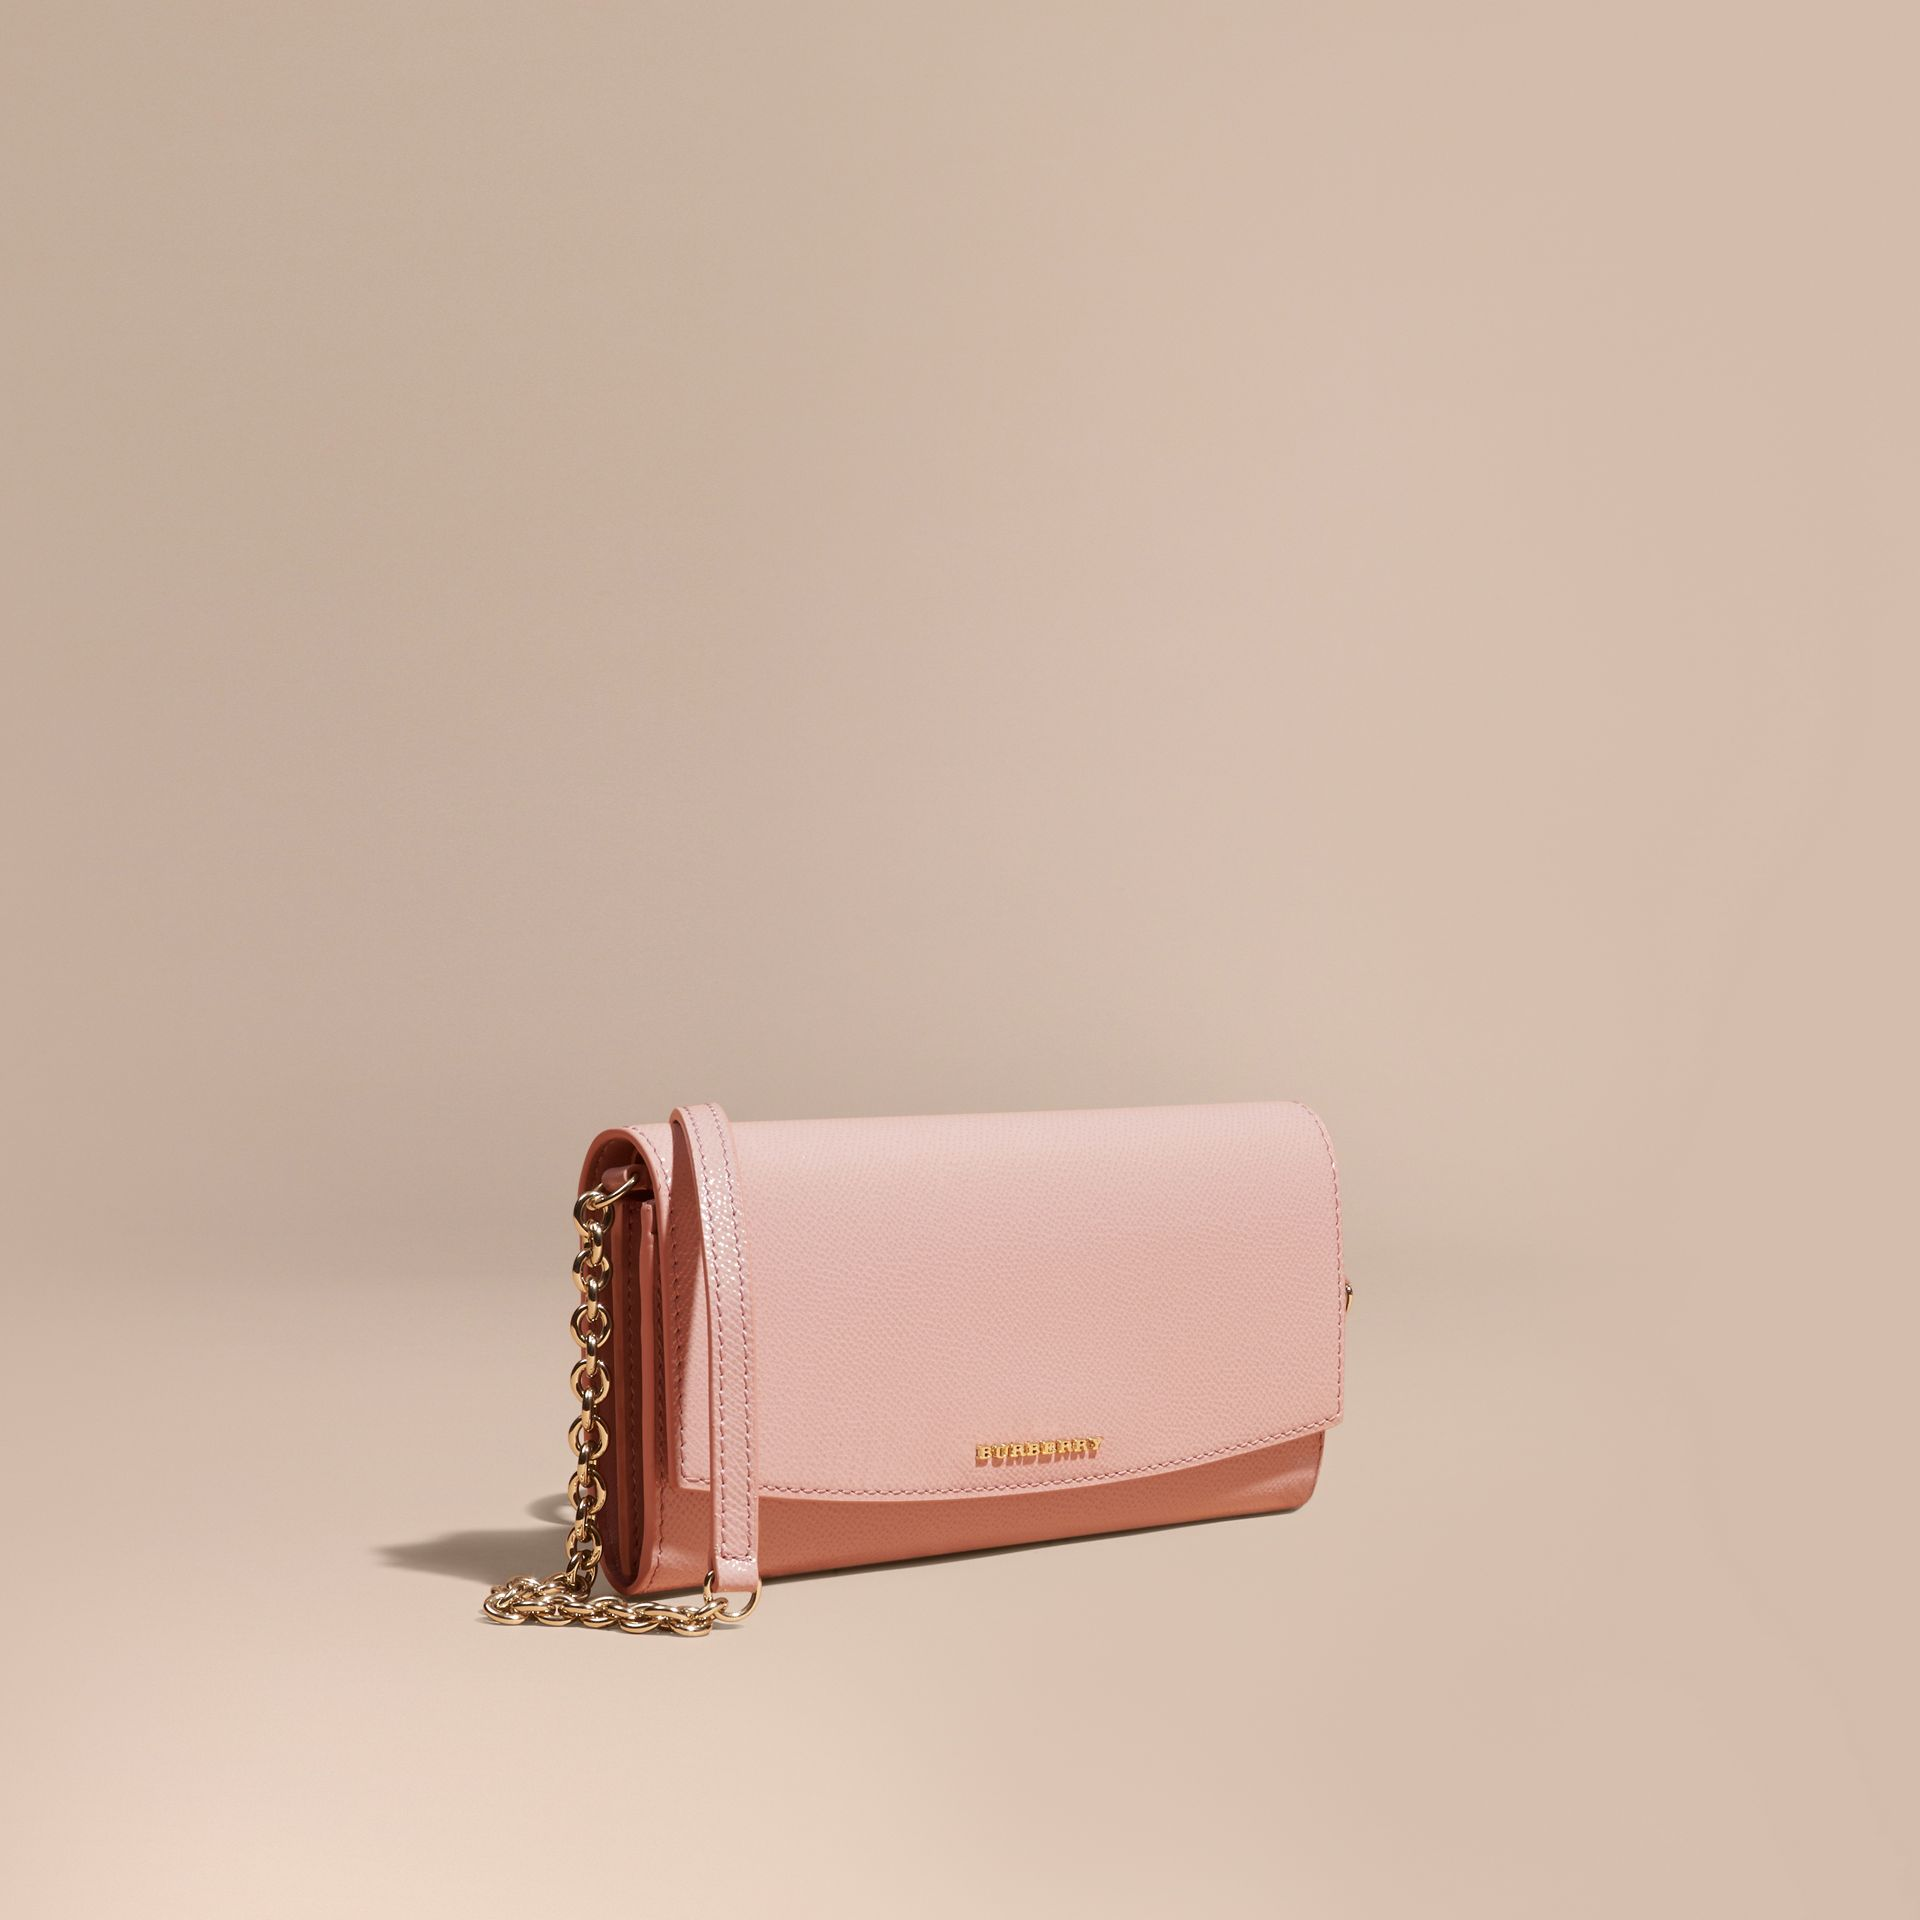 Leather Wallet with Chain in Ash Rose - gallery image 1